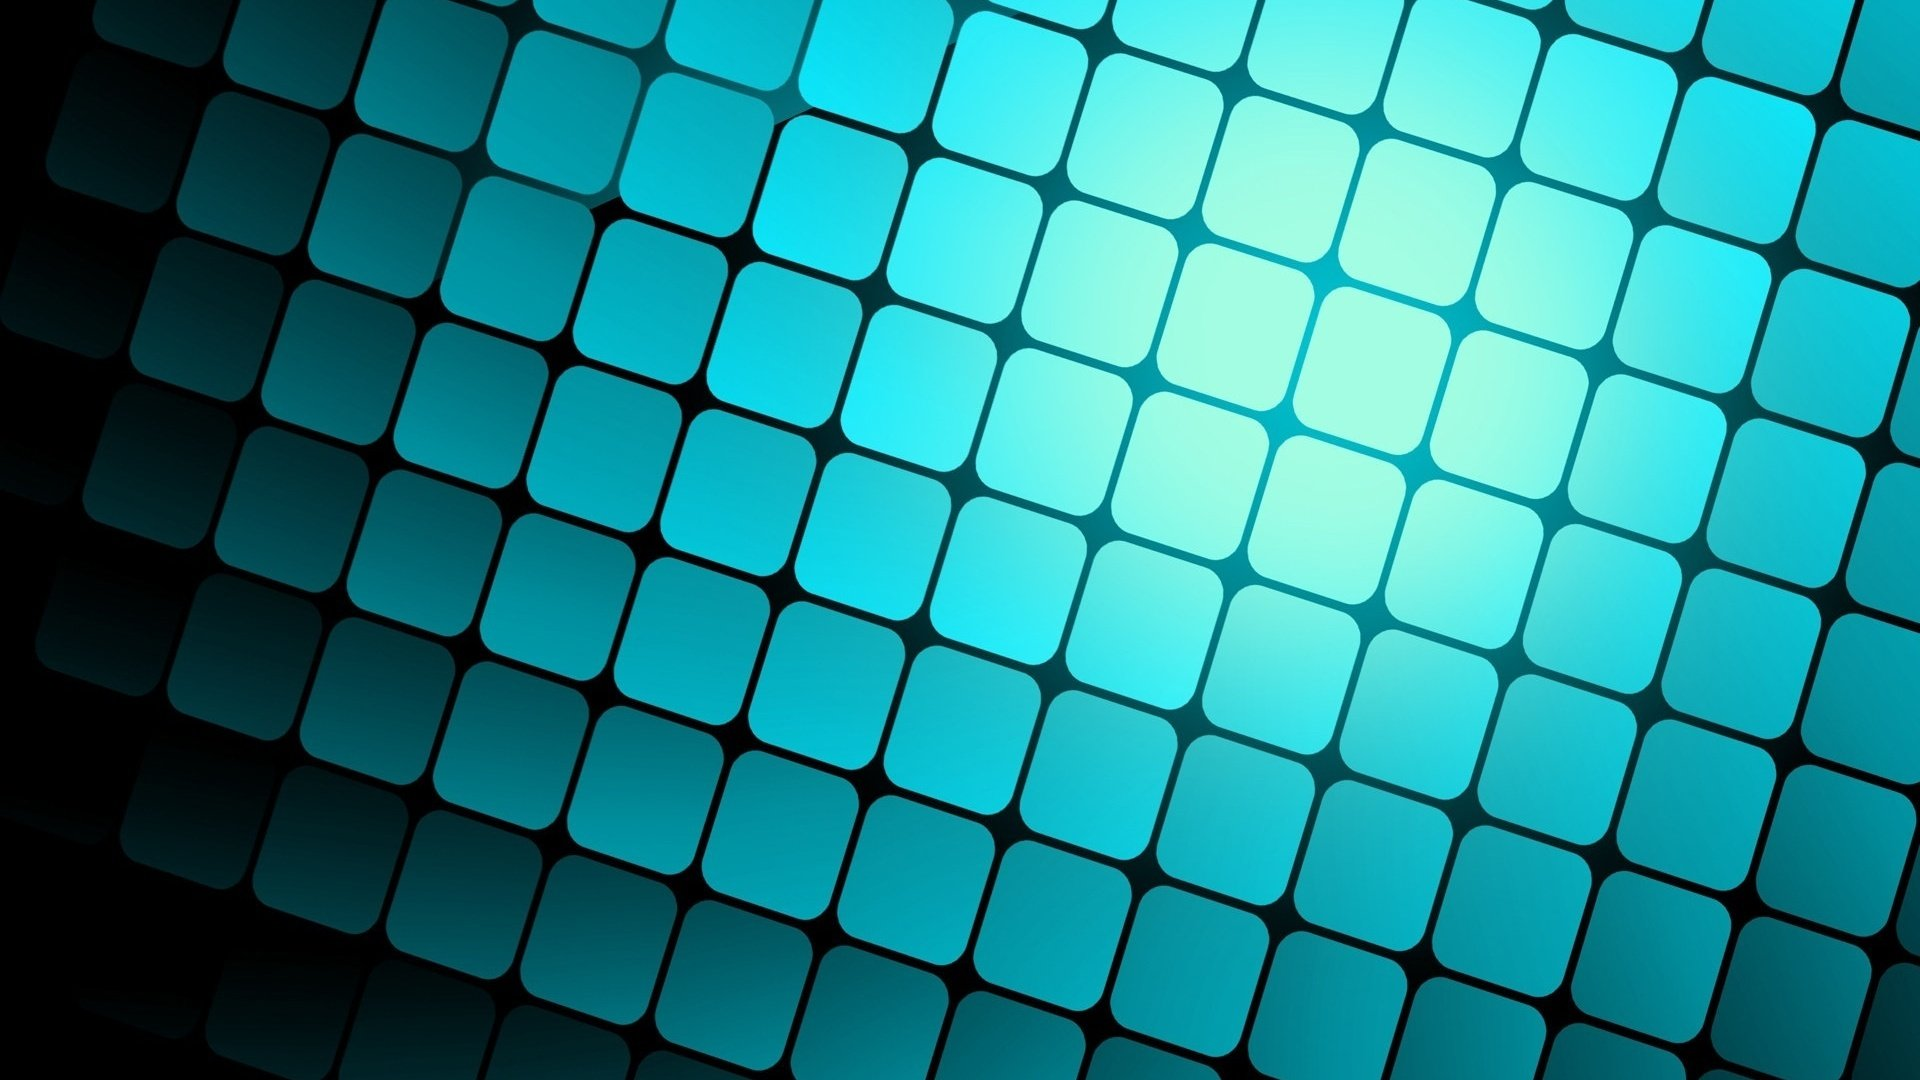 Turquoise And Black Wallpaper image gallery 1920x1080